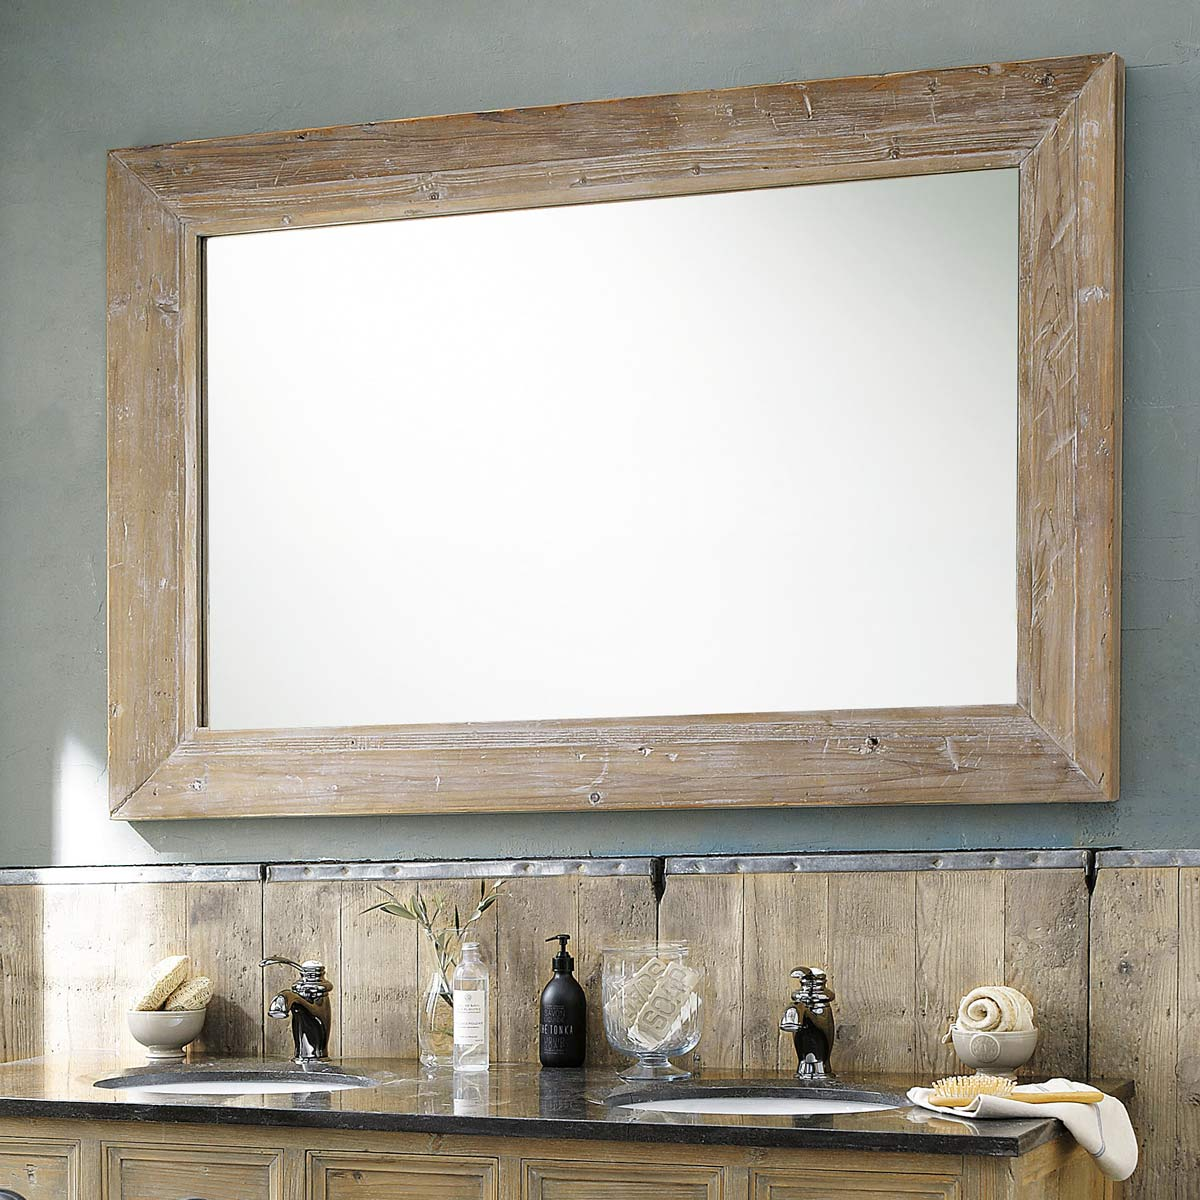 Grand miroir en bois naturel miroir d coration for Grand miroir decoratif